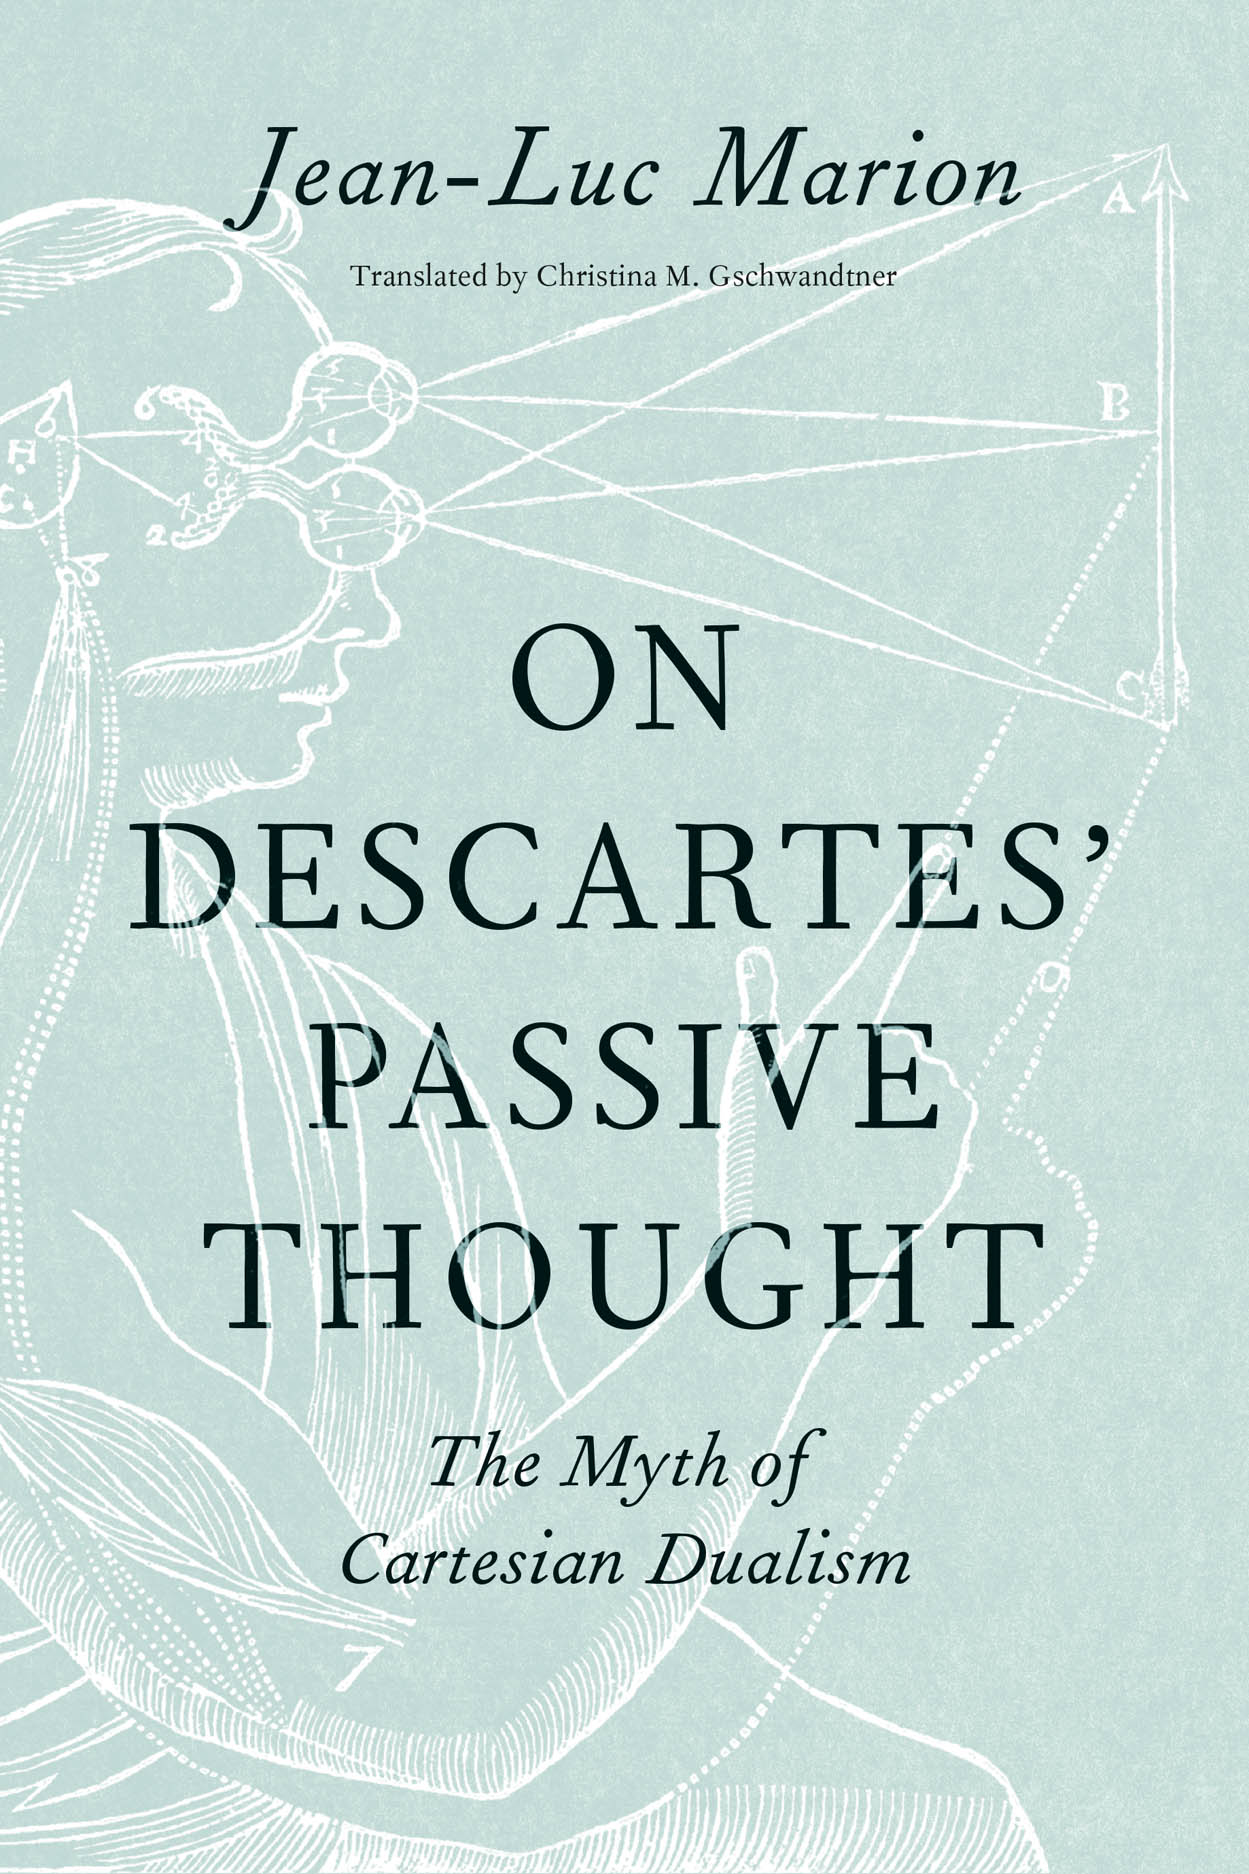 On Descartes' Passive Thought: The Myth of Cartesian Dualism